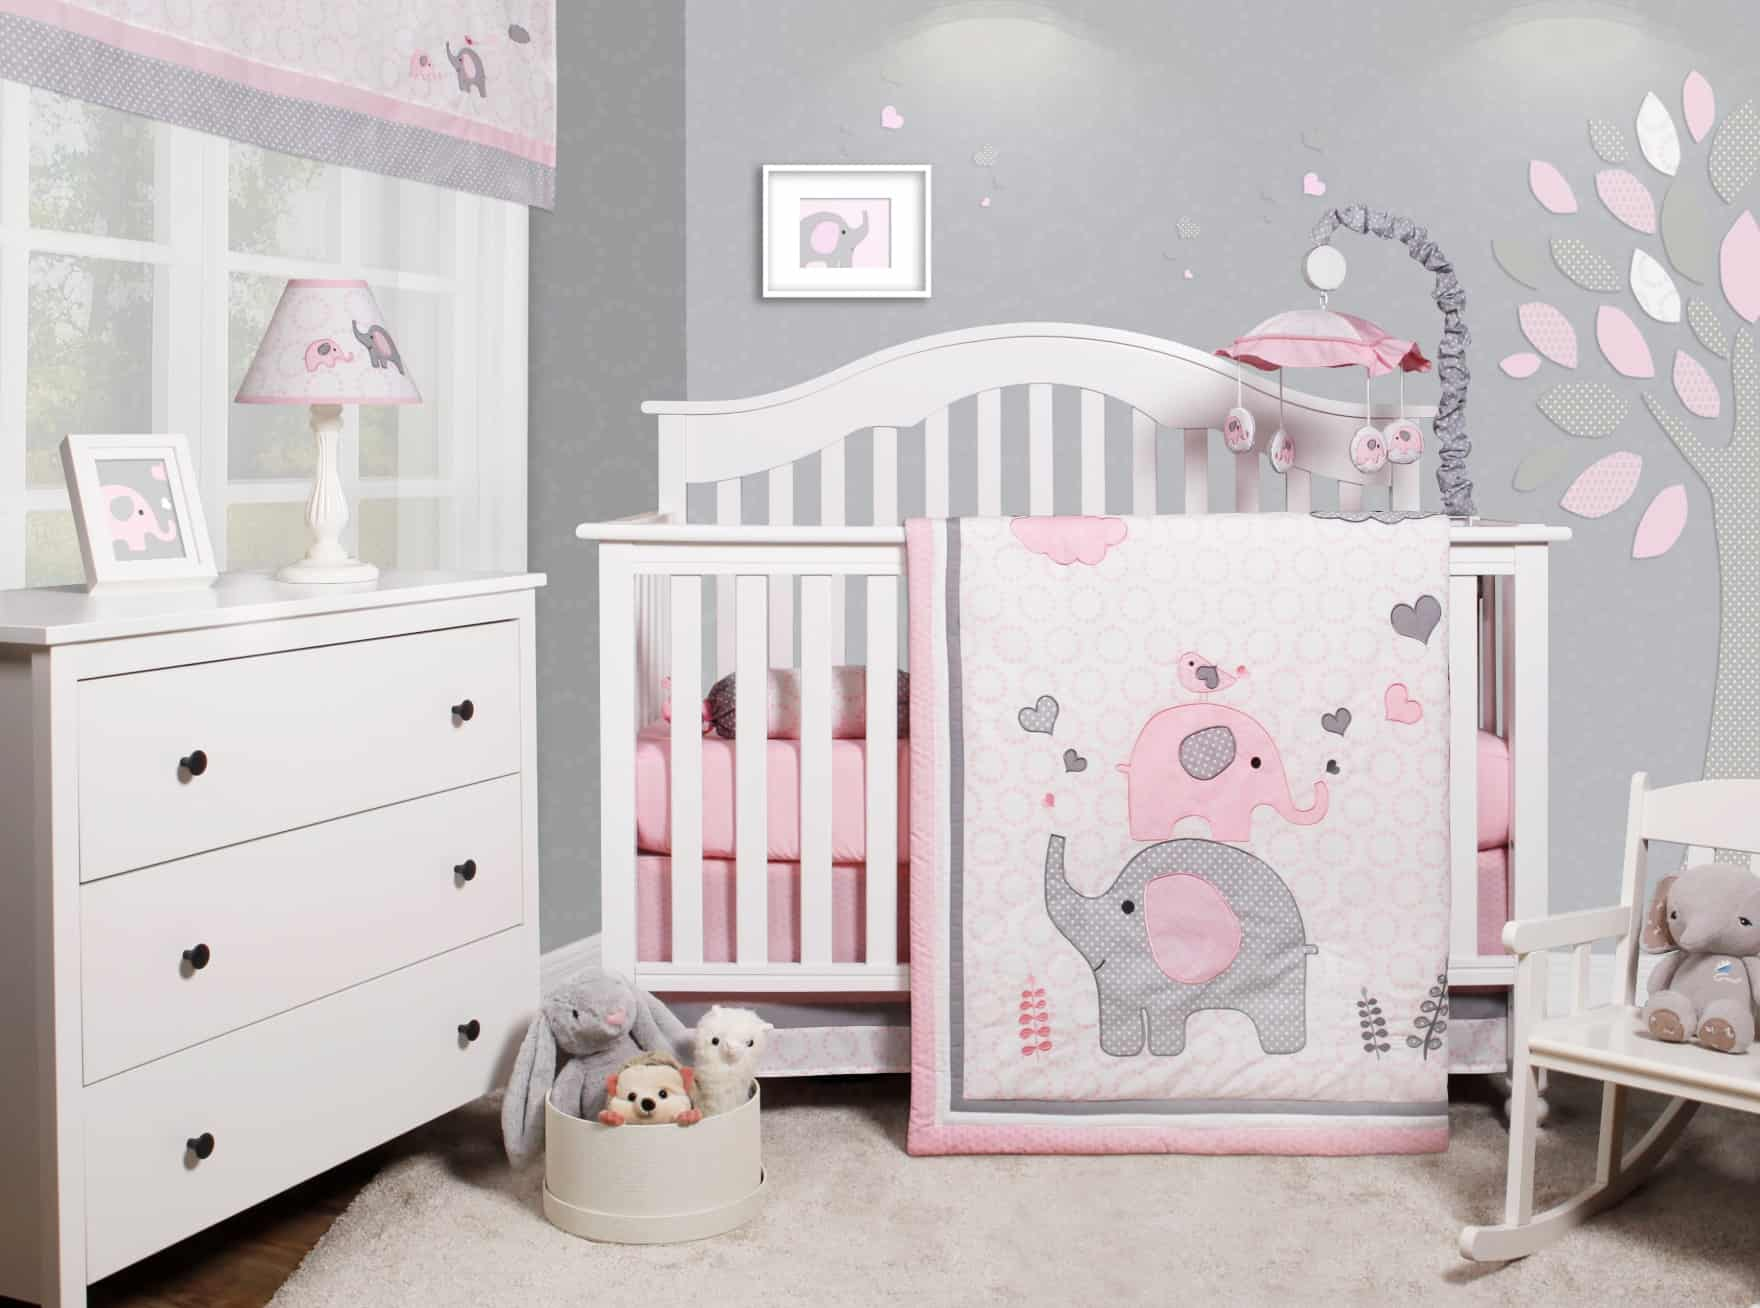 20 Cute Baby Girl Room Ideas